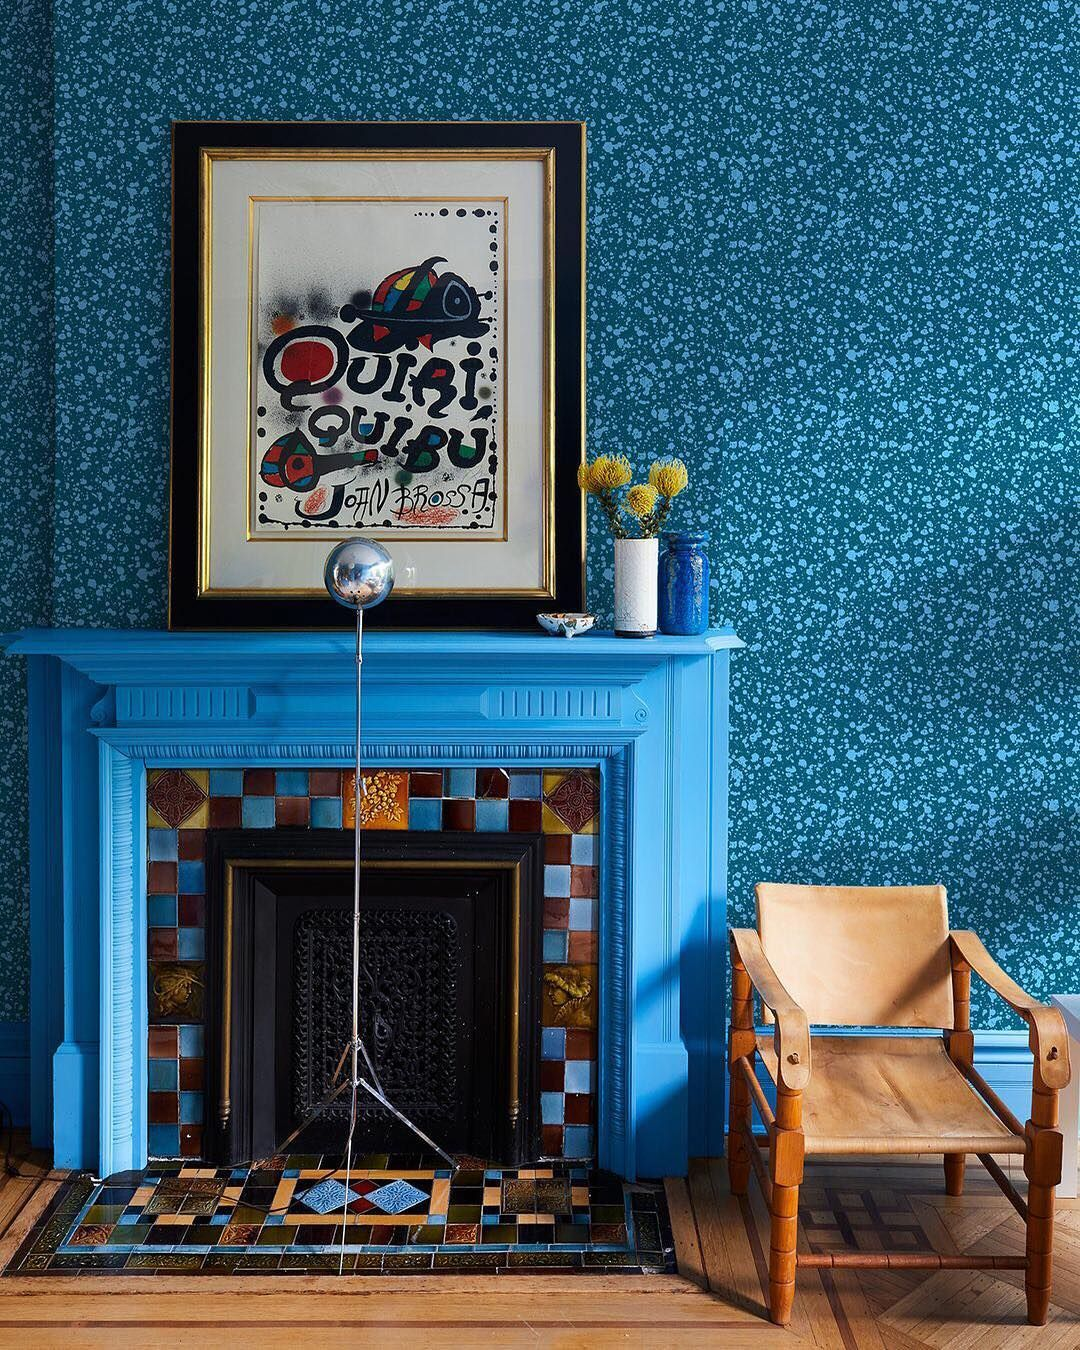 Vogue Living On Instagram If Spartan Rooms And Neutral Hues Leave You Cold A New Line Of Maximalist Wallpapers B Fireplace Design Vinyl Wallpaper Chris Benz